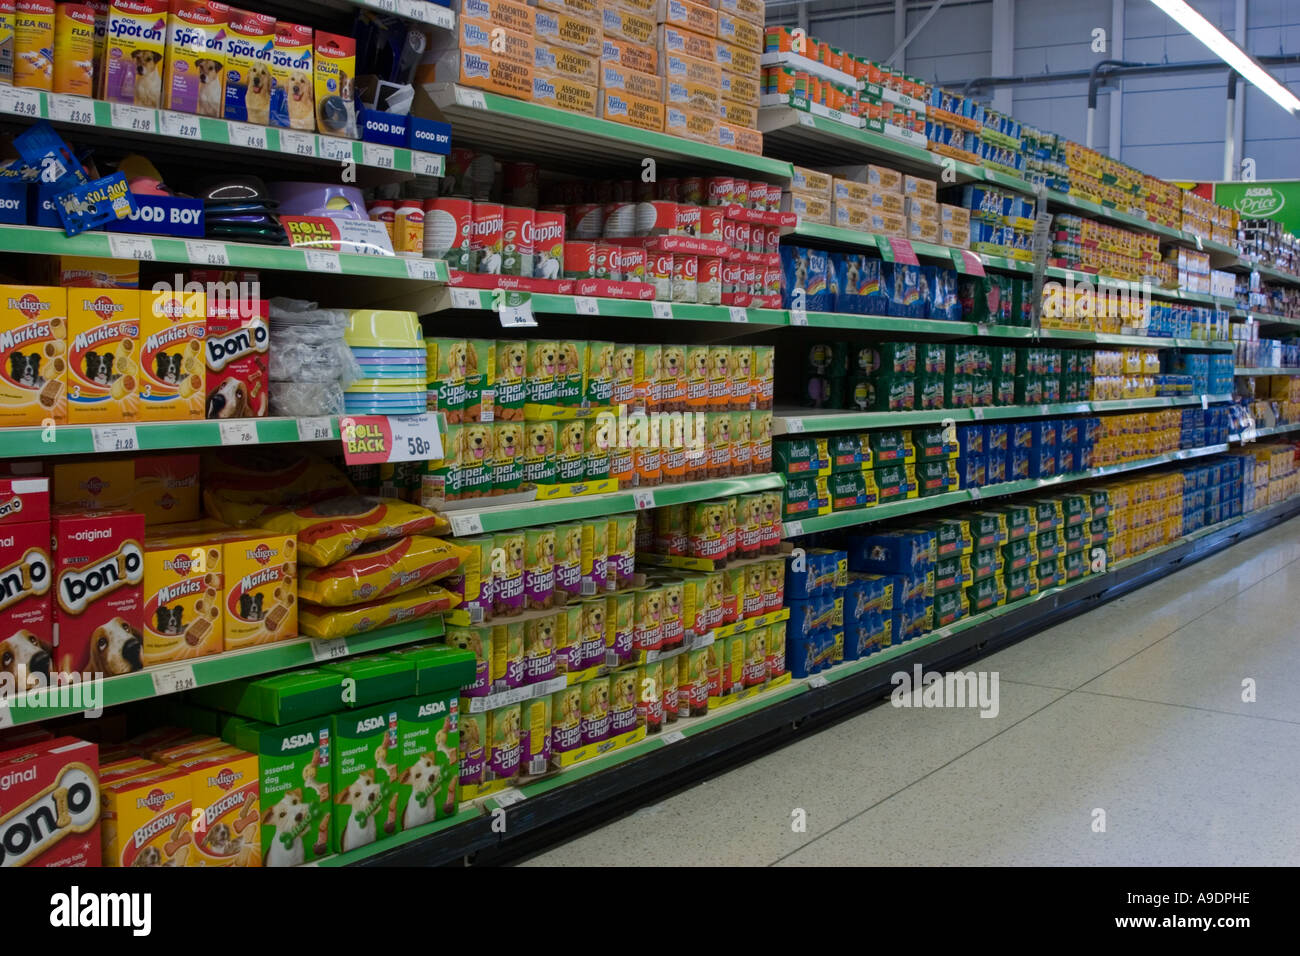 Tins of dog food and pet accessories on a supermarket shelf - Stock Image